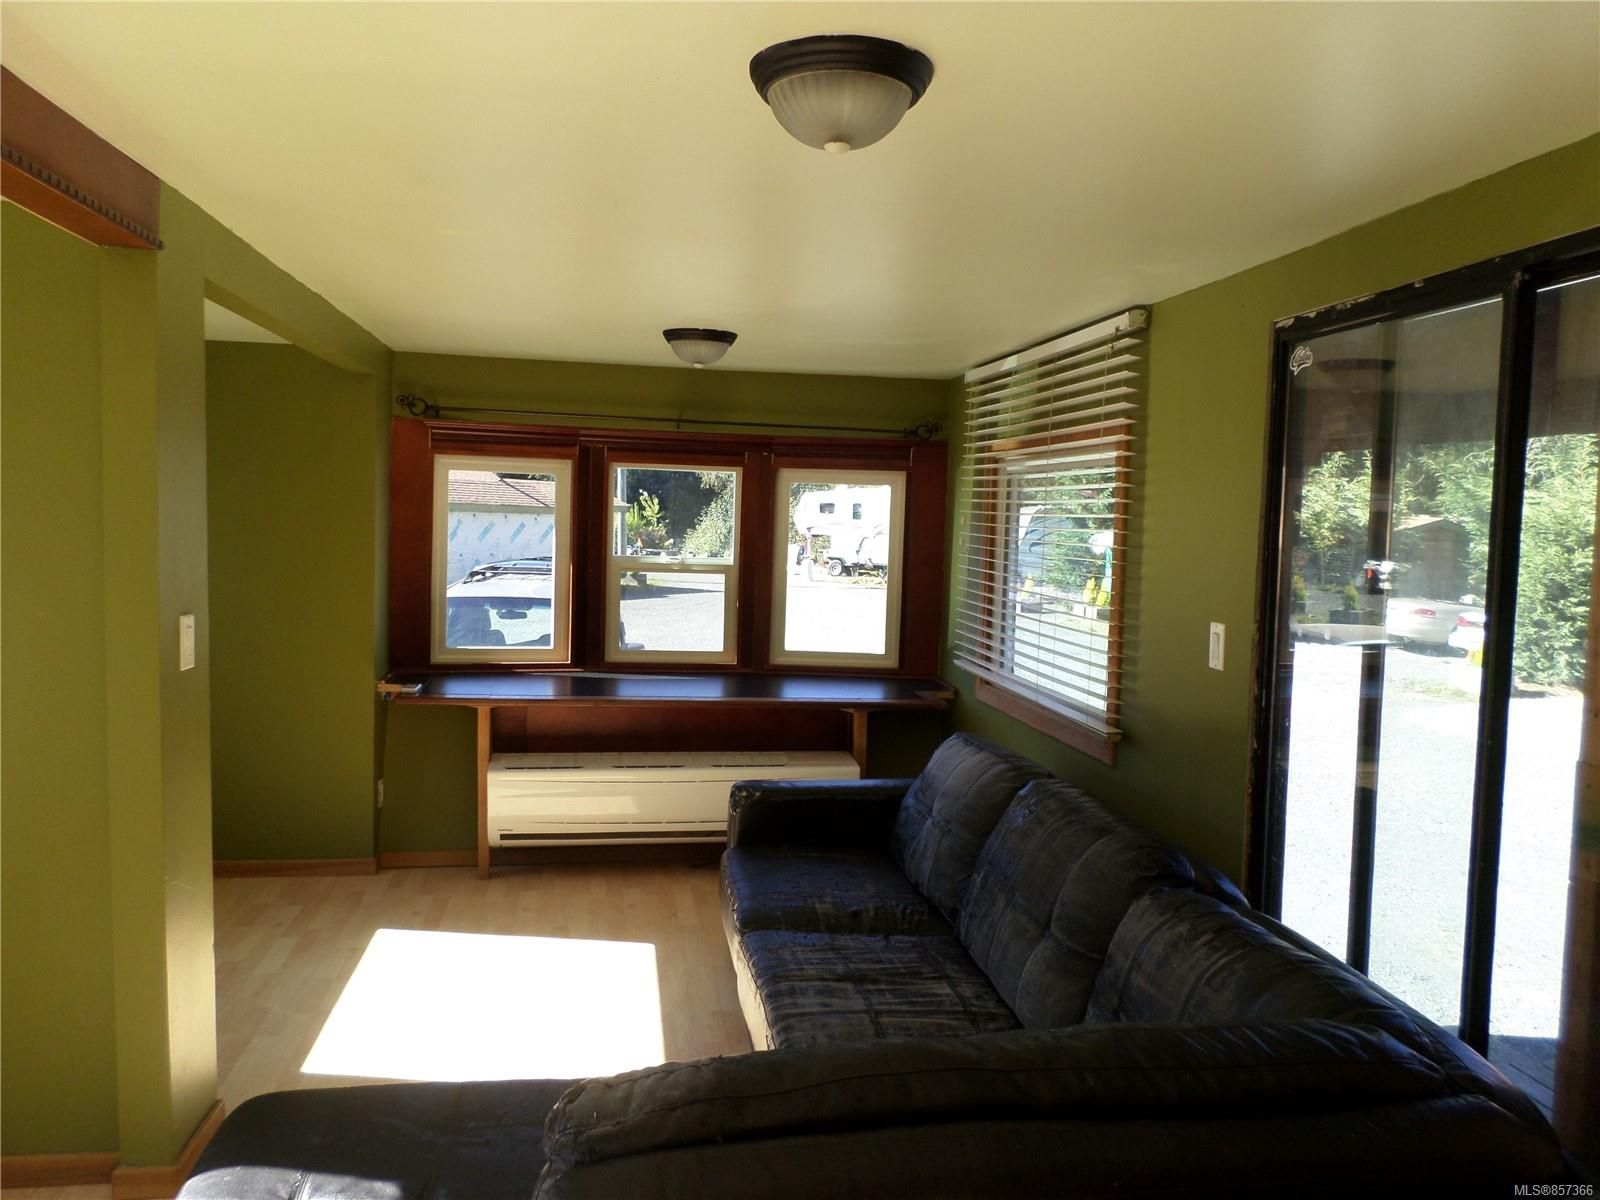 Photo 13: Photos: 1747 Nahmint Rd in : PQ Qualicum North Mixed Use for sale (Parksville/Qualicum)  : MLS®# 857366